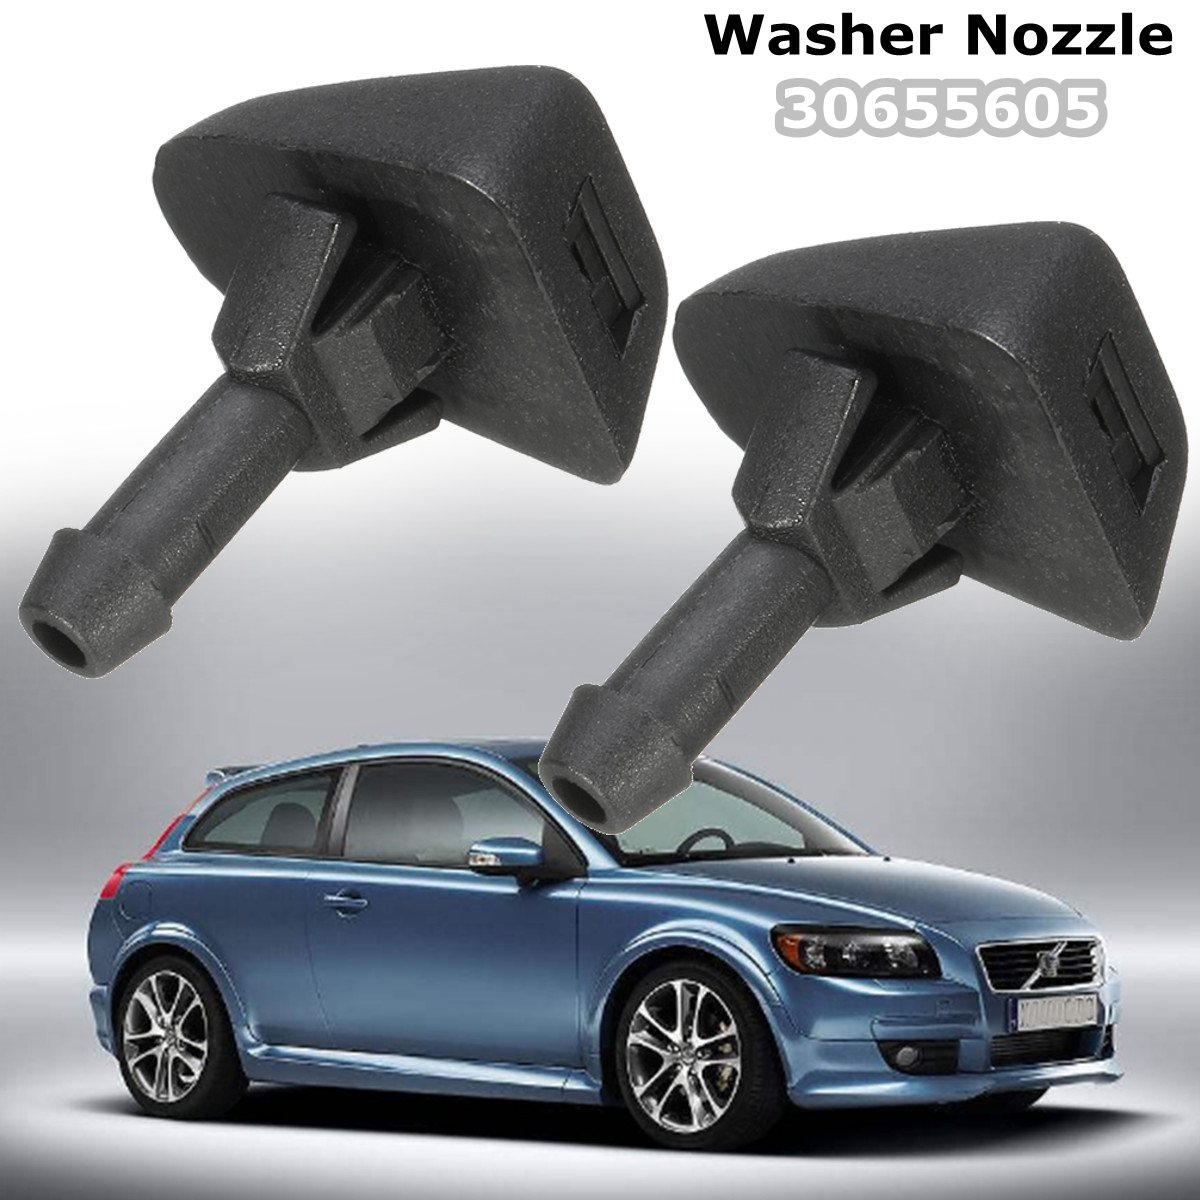 Us 1 32 12 Off 2x Windscreen Washer Nozzle Squirter Jet Windshield Washer Nozzles Jet 30655605 For Volvo Xc90 C30 C70 S In Windscreen Wipers From